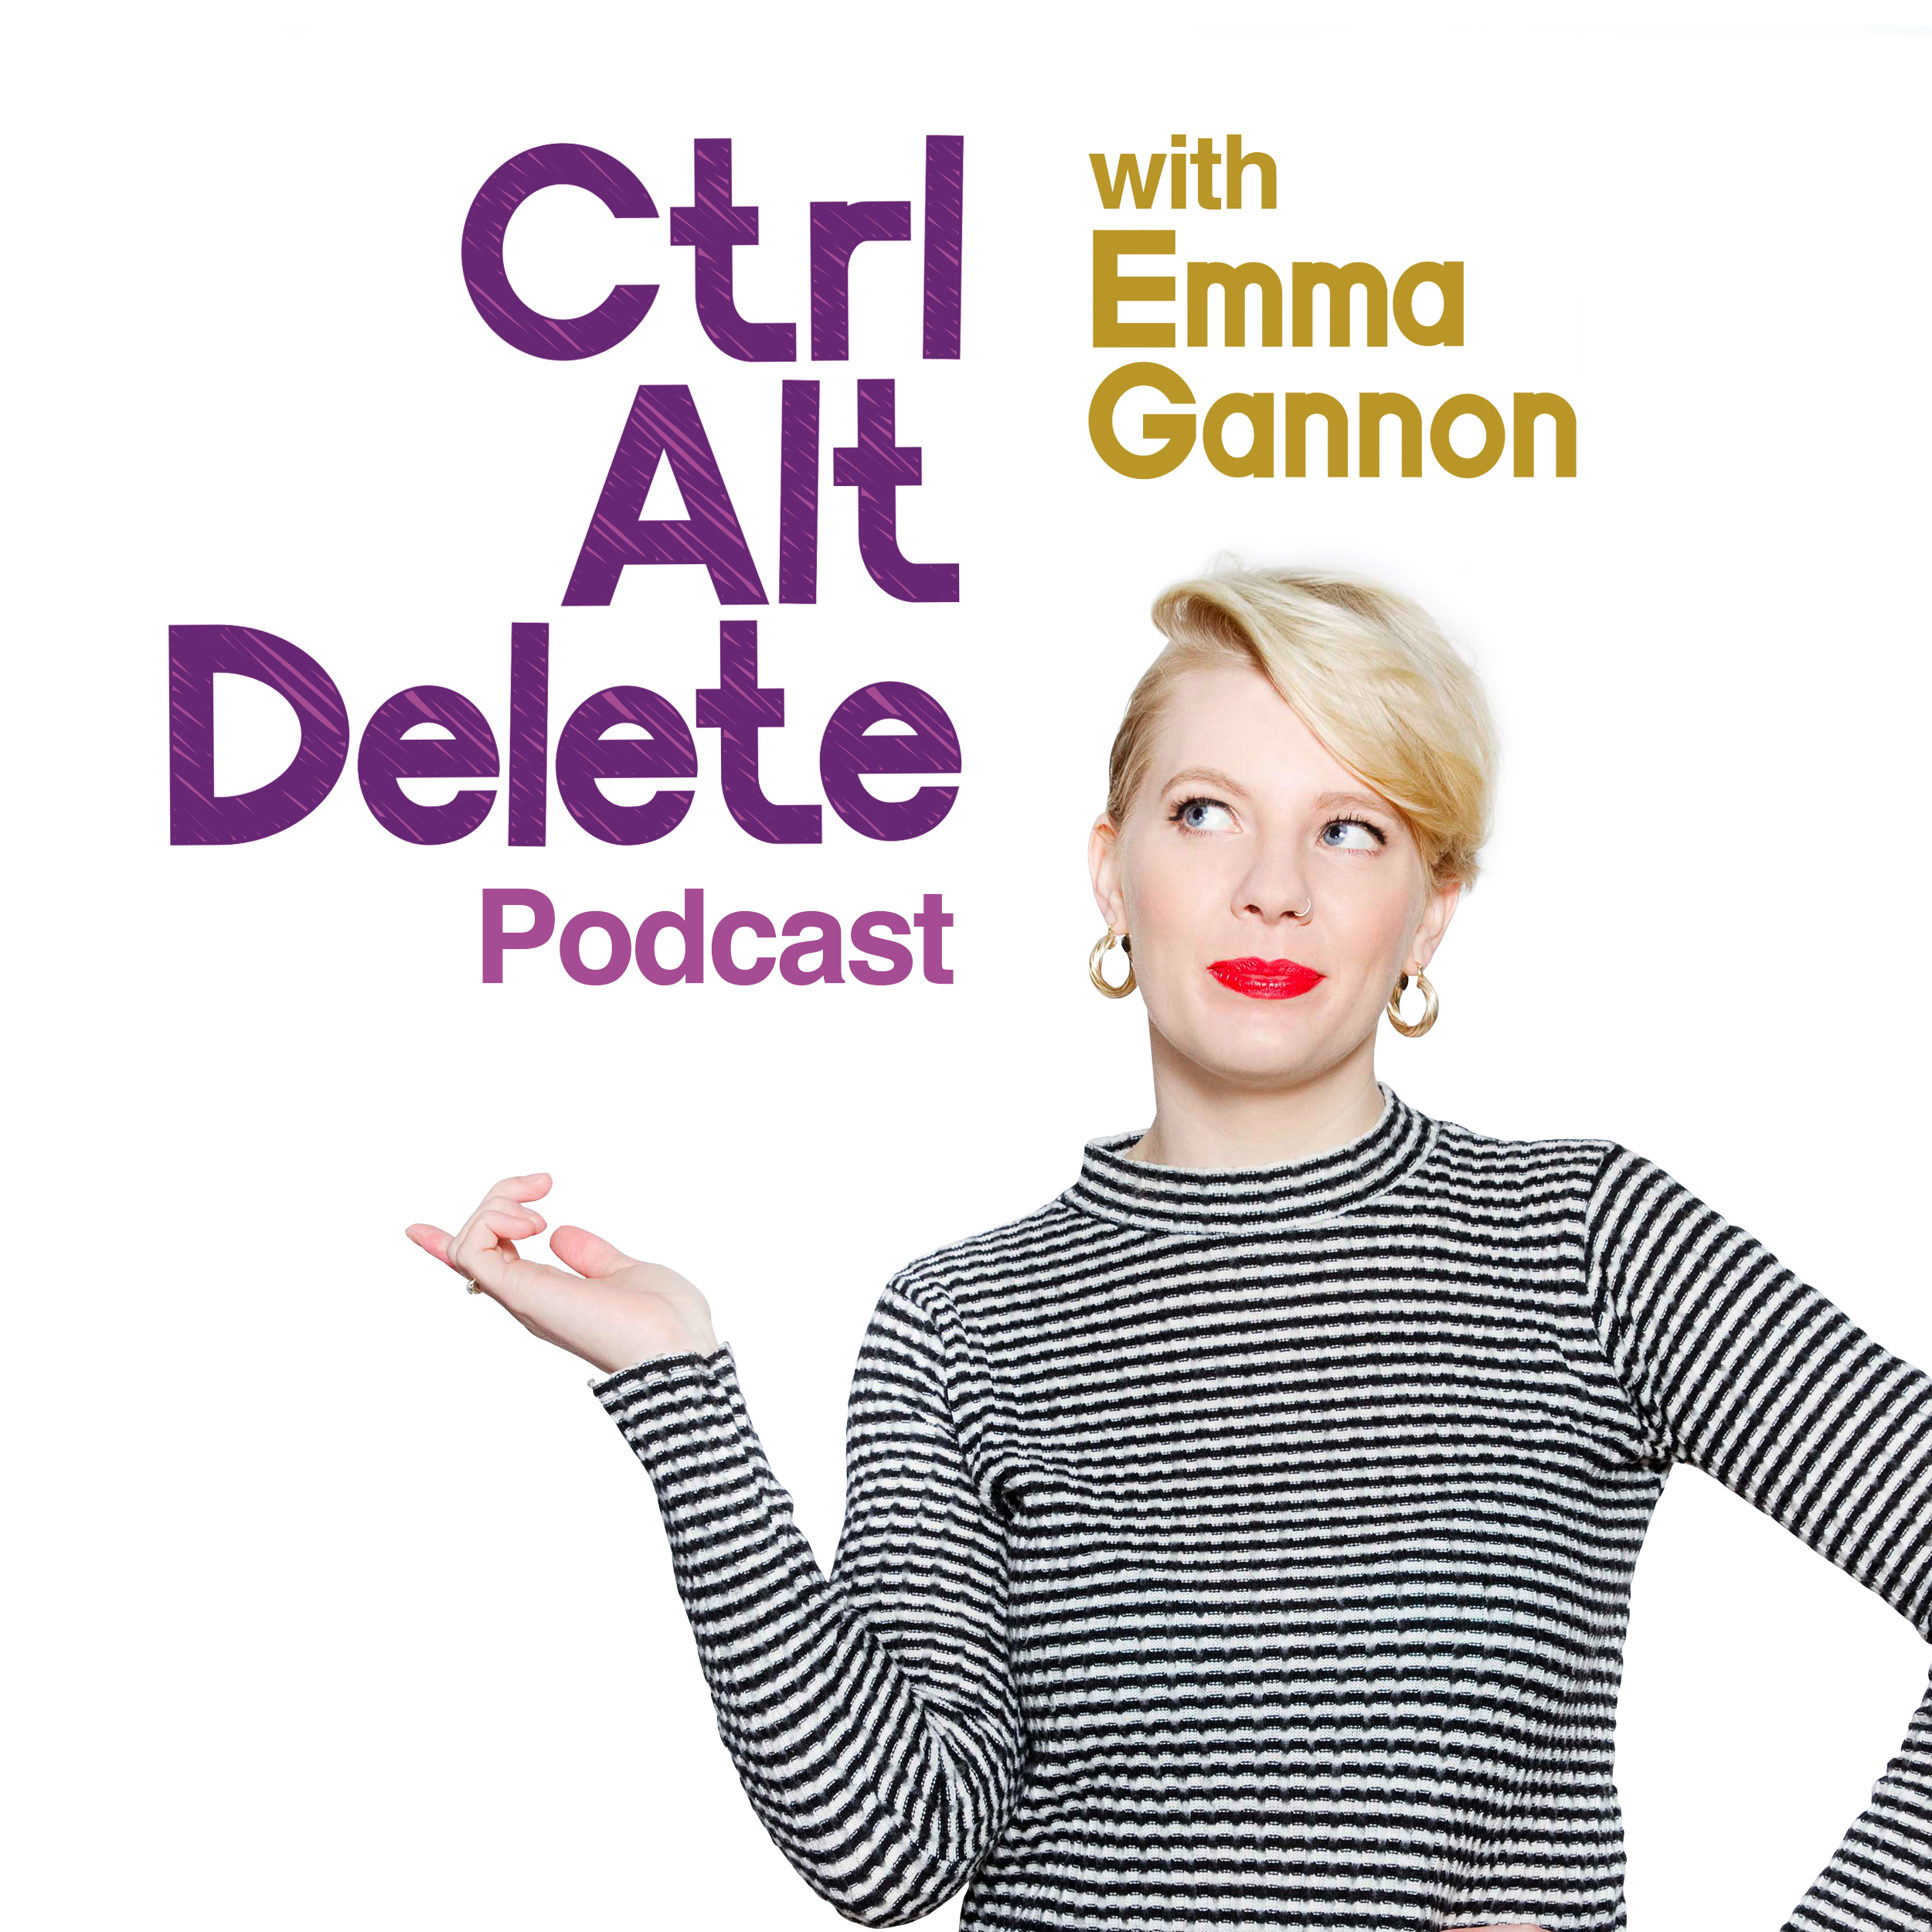 One of my all time favourite podcasts Emma Gannon interiews some very inspirational people, thought provoking, motivating and thoroughly entertaining.  CTRL ALT DELETE